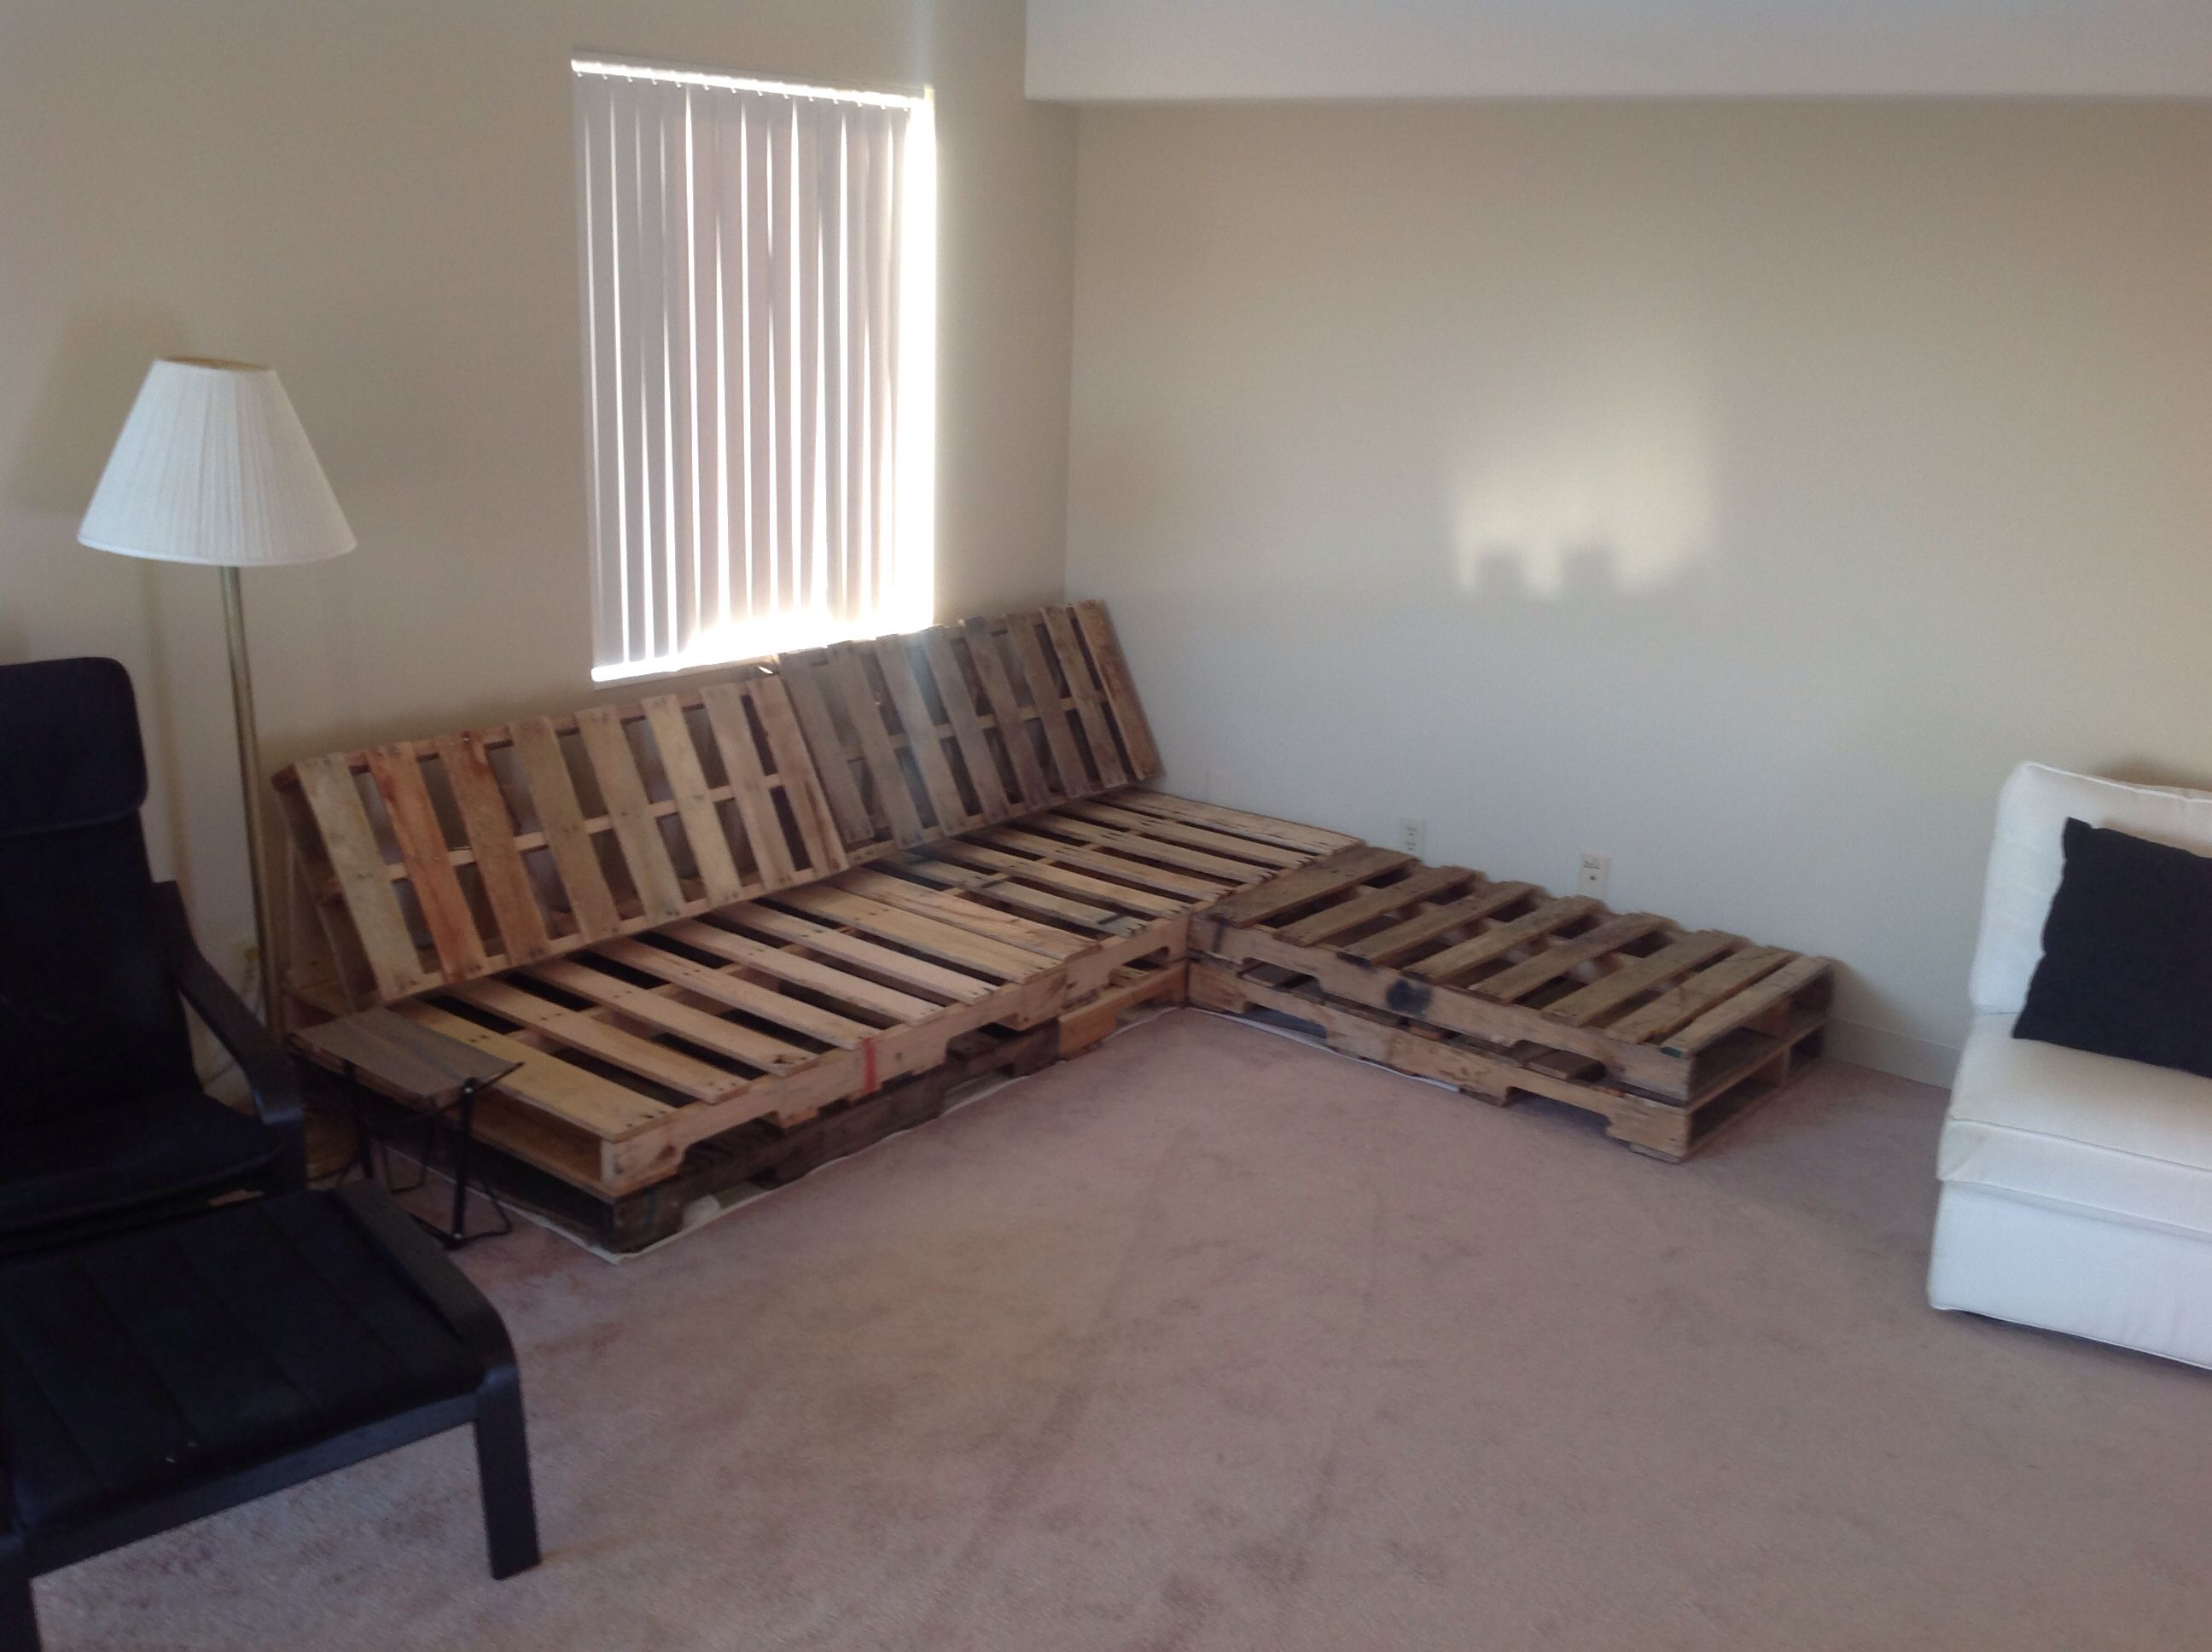 Diy Pallet Couch With Chaise Lounge Cushions Are In